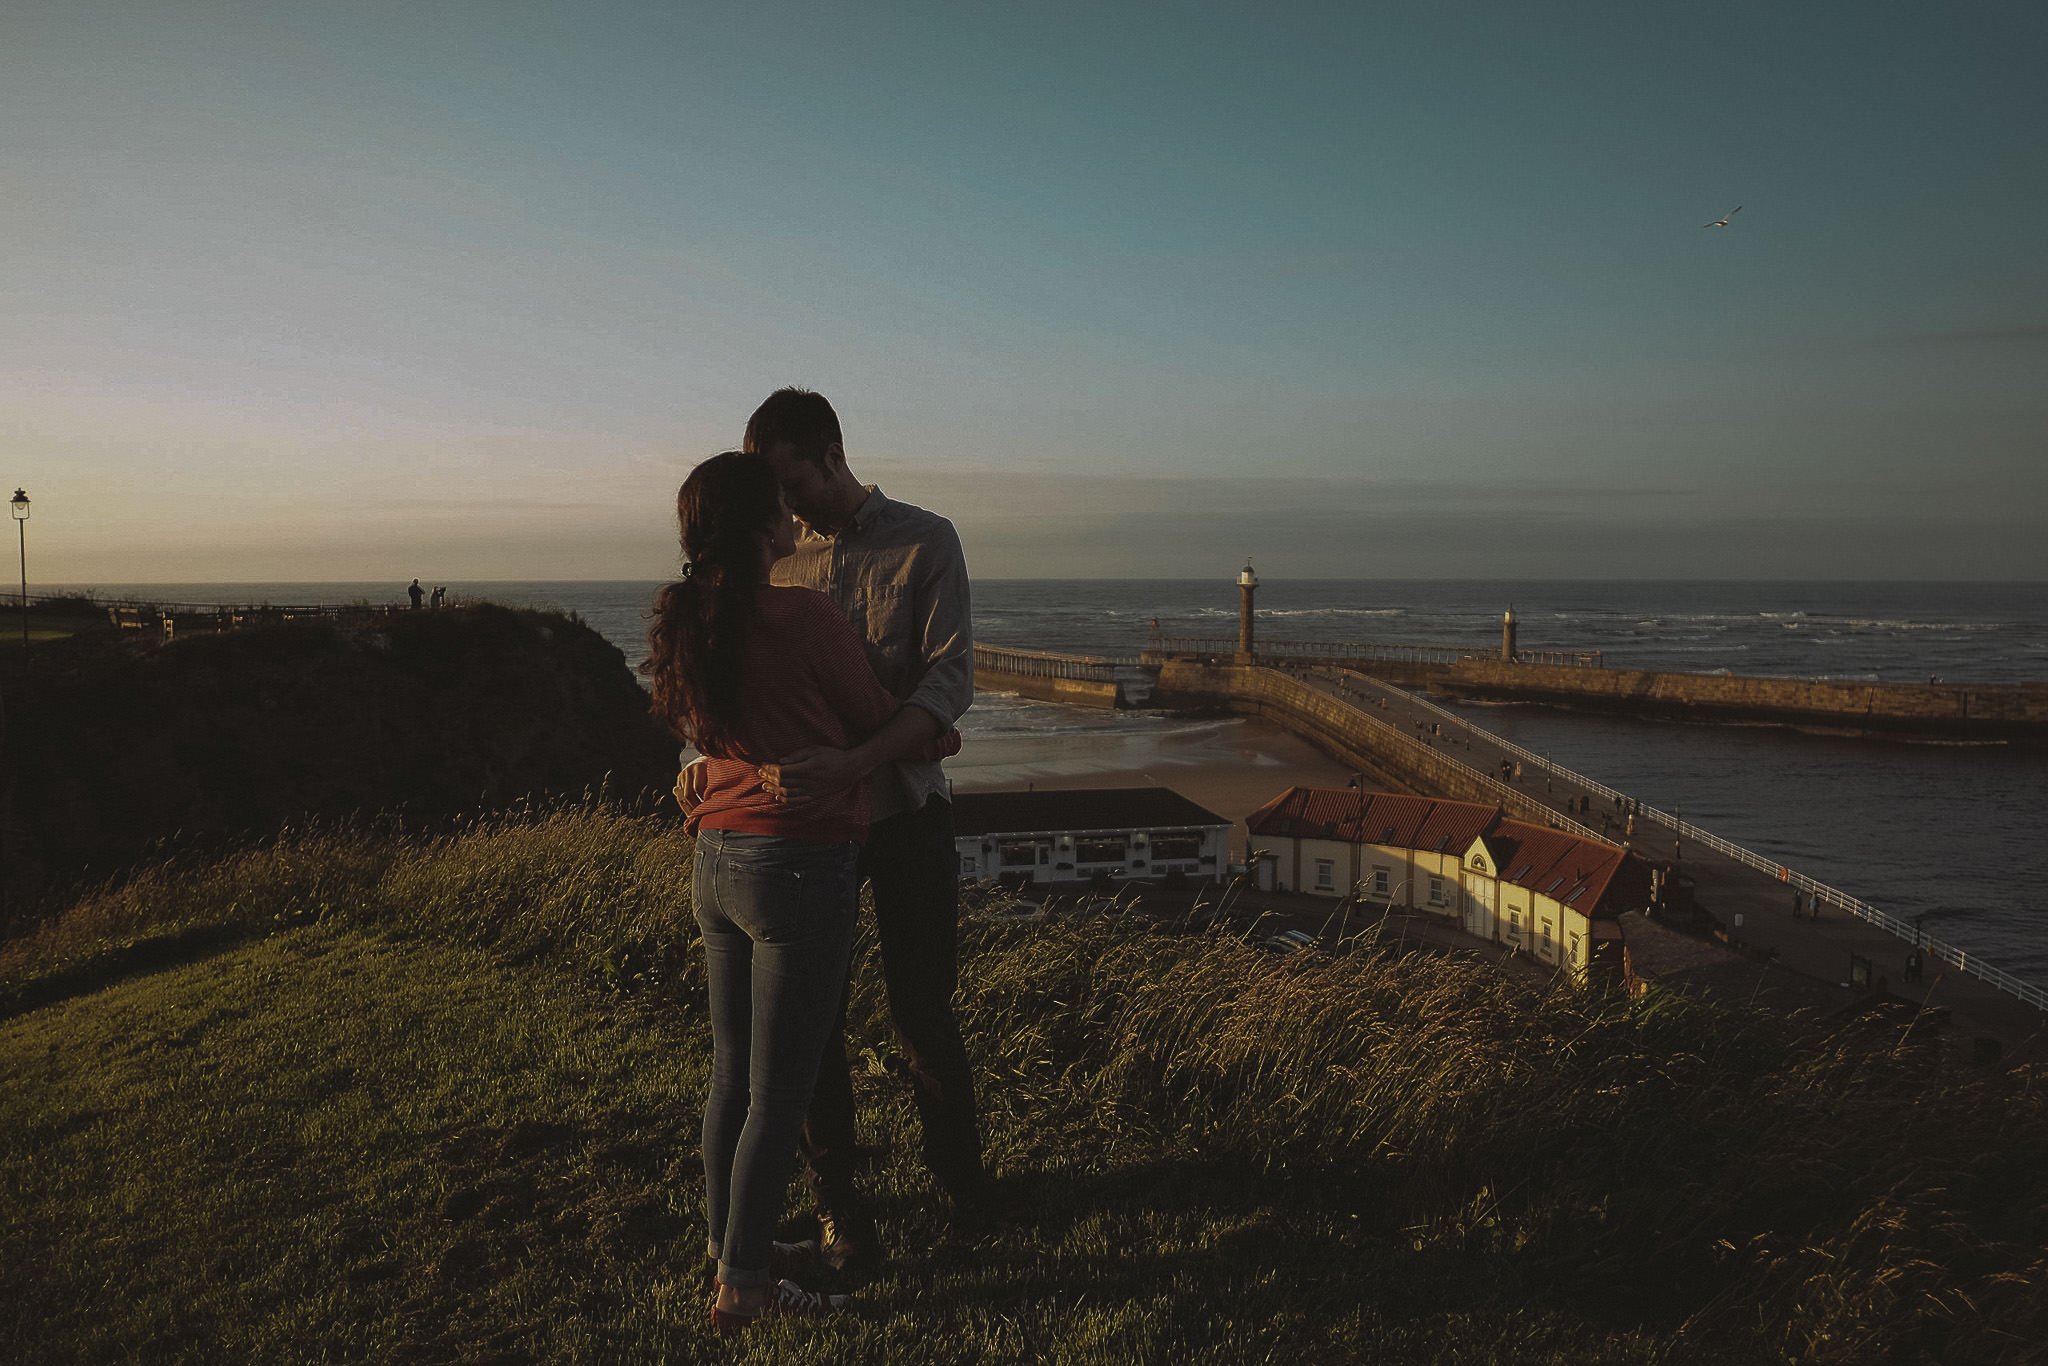 A silhouette of Katy and Tom hug as the sun goes down on a grassy hill on the Khyber Pass overlooking Whitby Habour in Yorkshire on a pre-wedding engagement shoot by Barry Forshaw